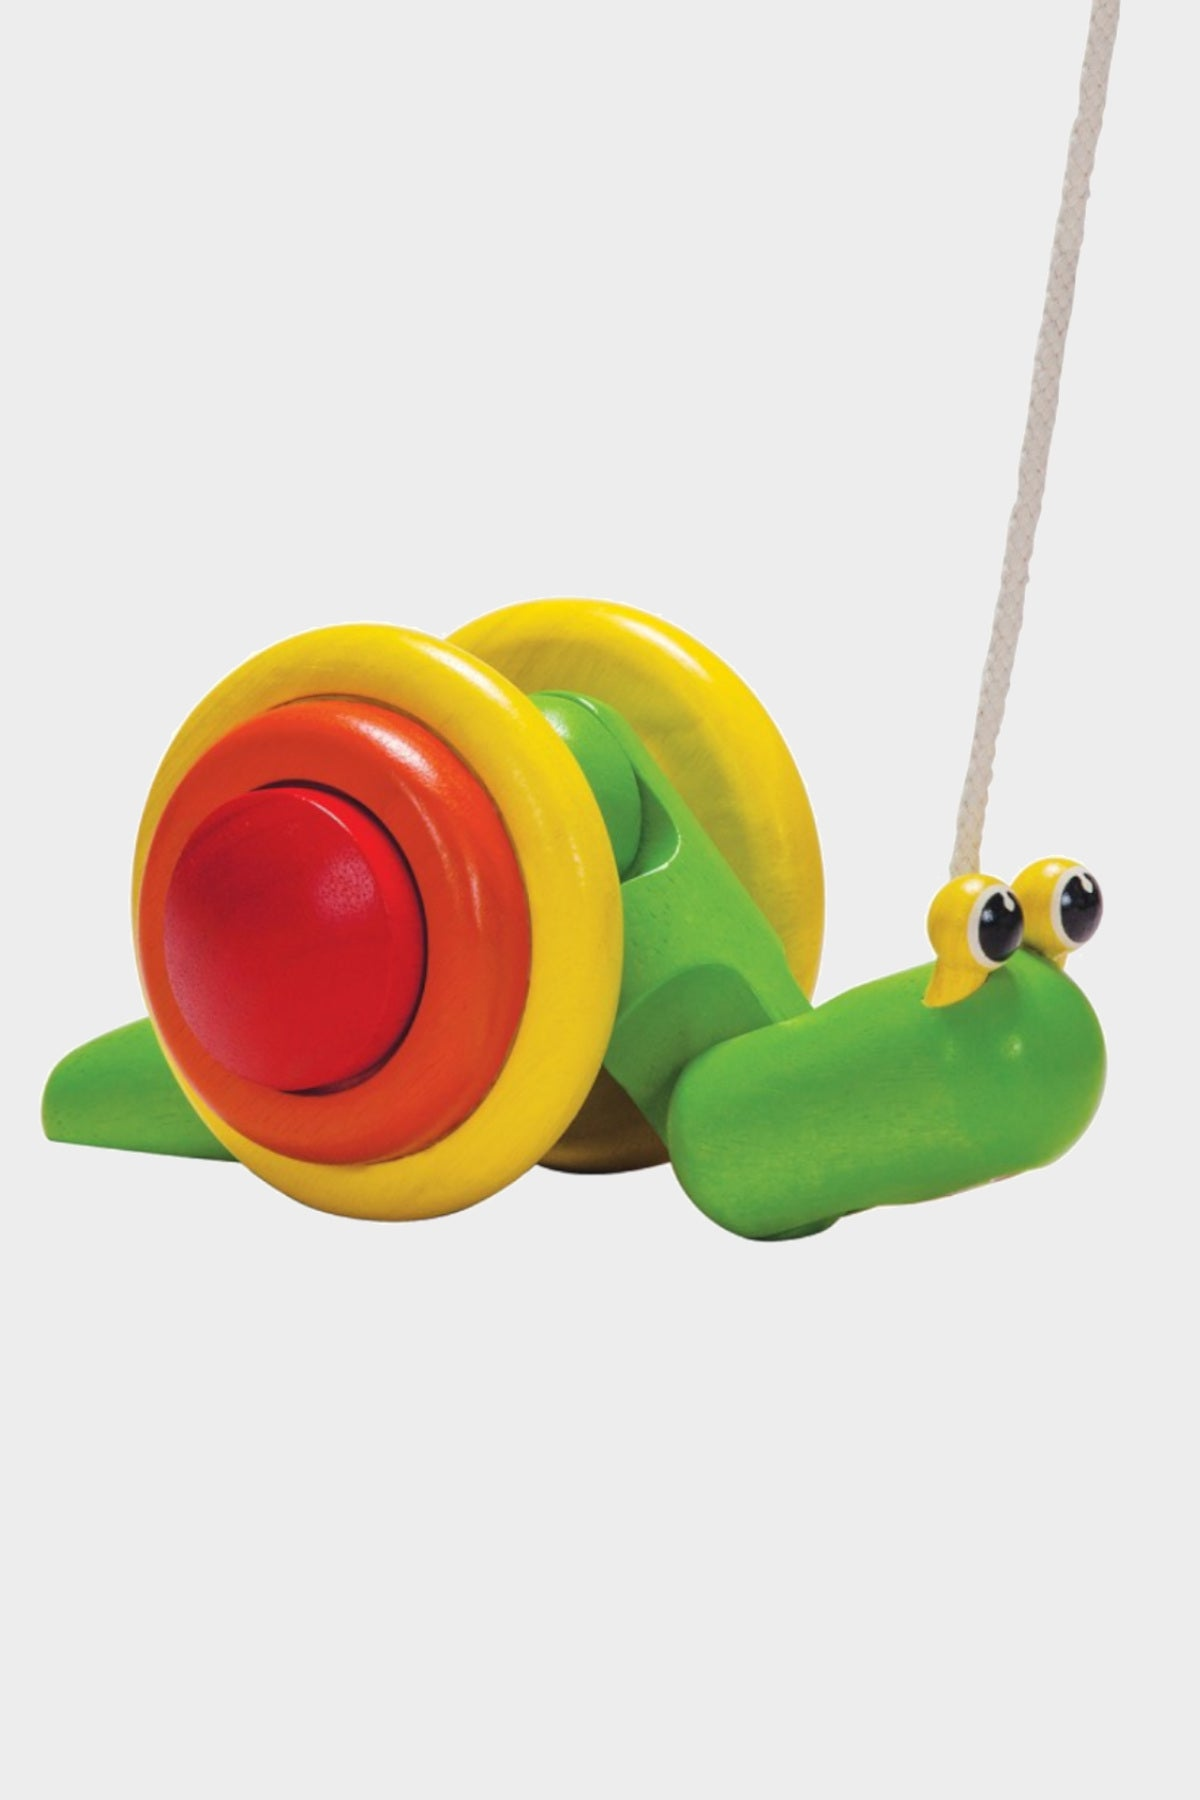 plan pull-along snail wood walking toy